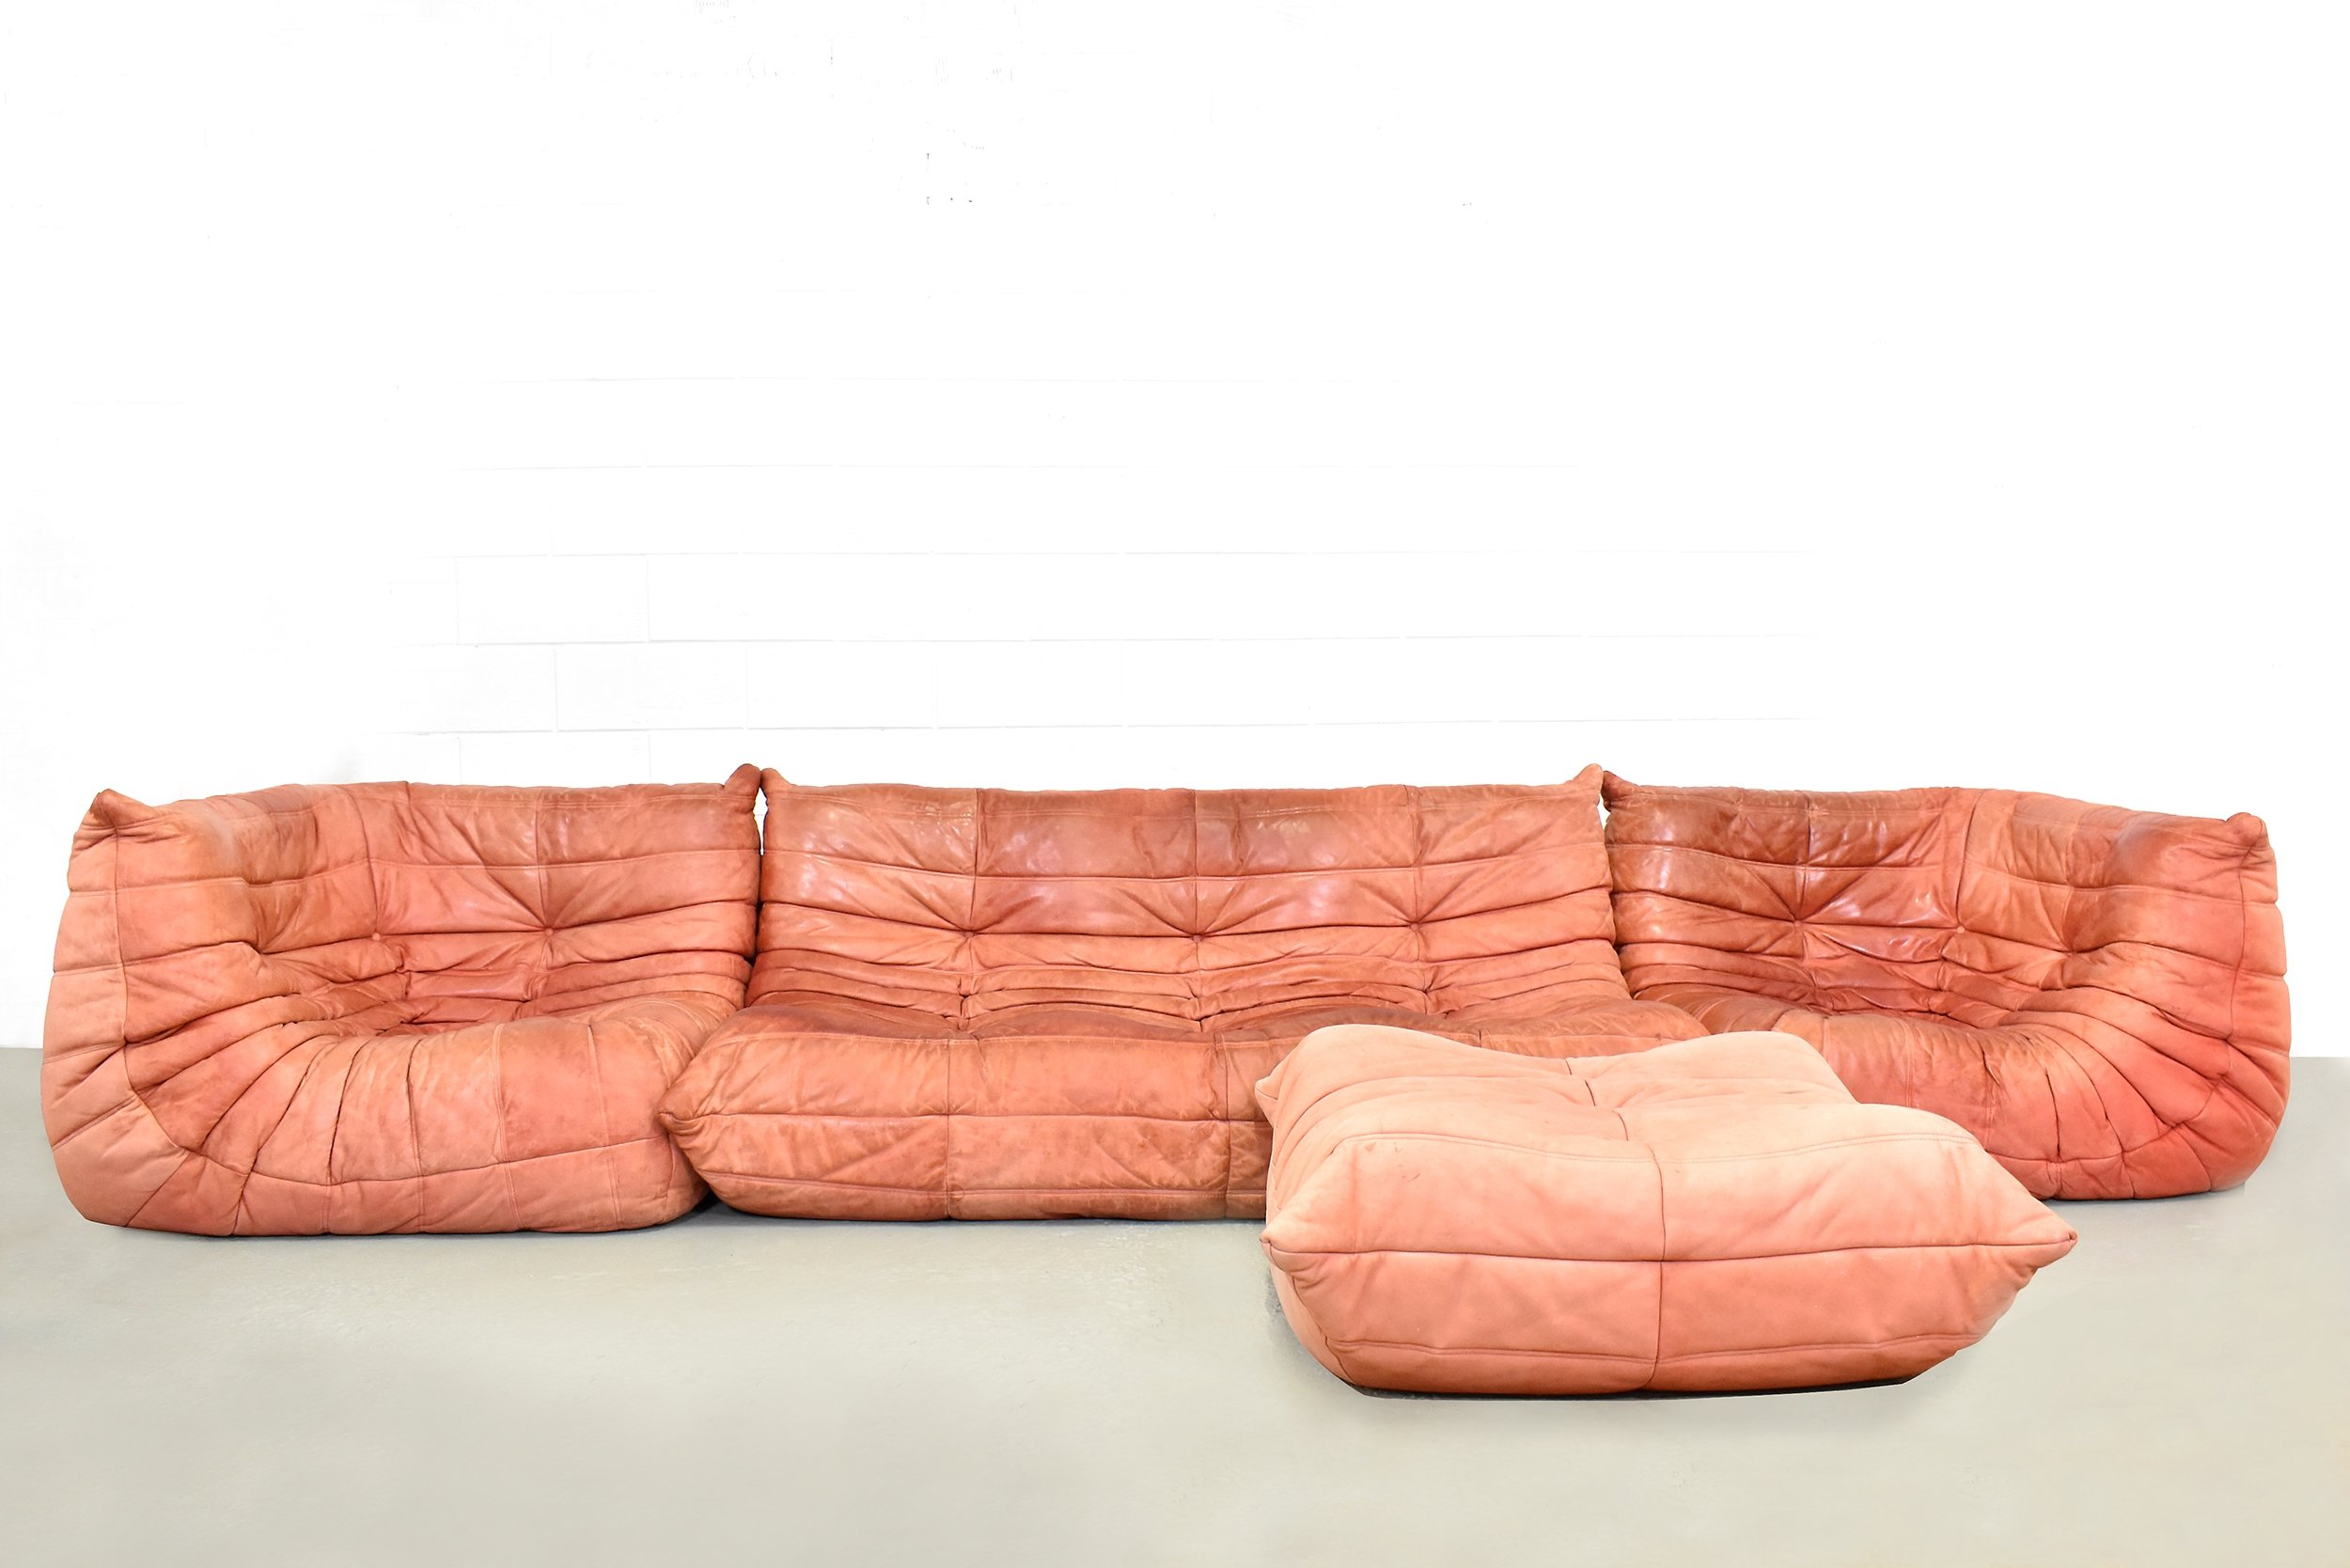 Togo Sofa In Suede Leather By Michel Ducaroy For Ligne Roset 1980s